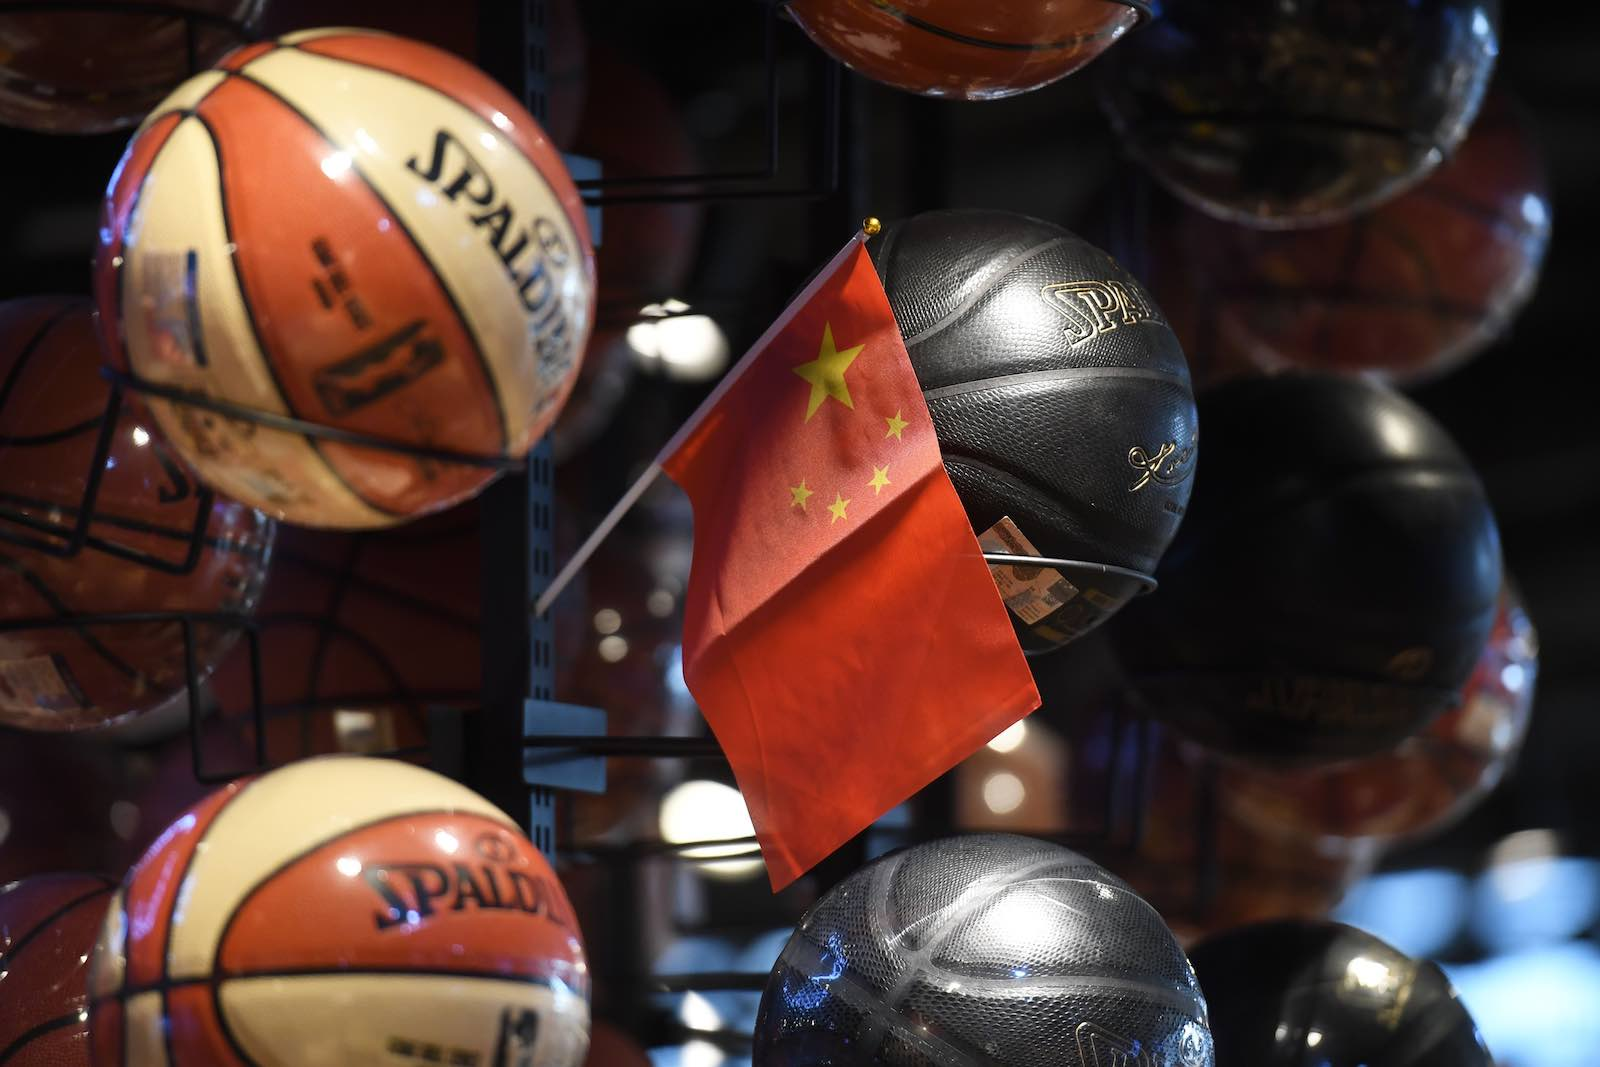 A Chinese flag is placed into a display of basketballs in the National Basketball Association (NBA) store in Beijing this month (Photo: Greg Baker/AFP/Getty Images)